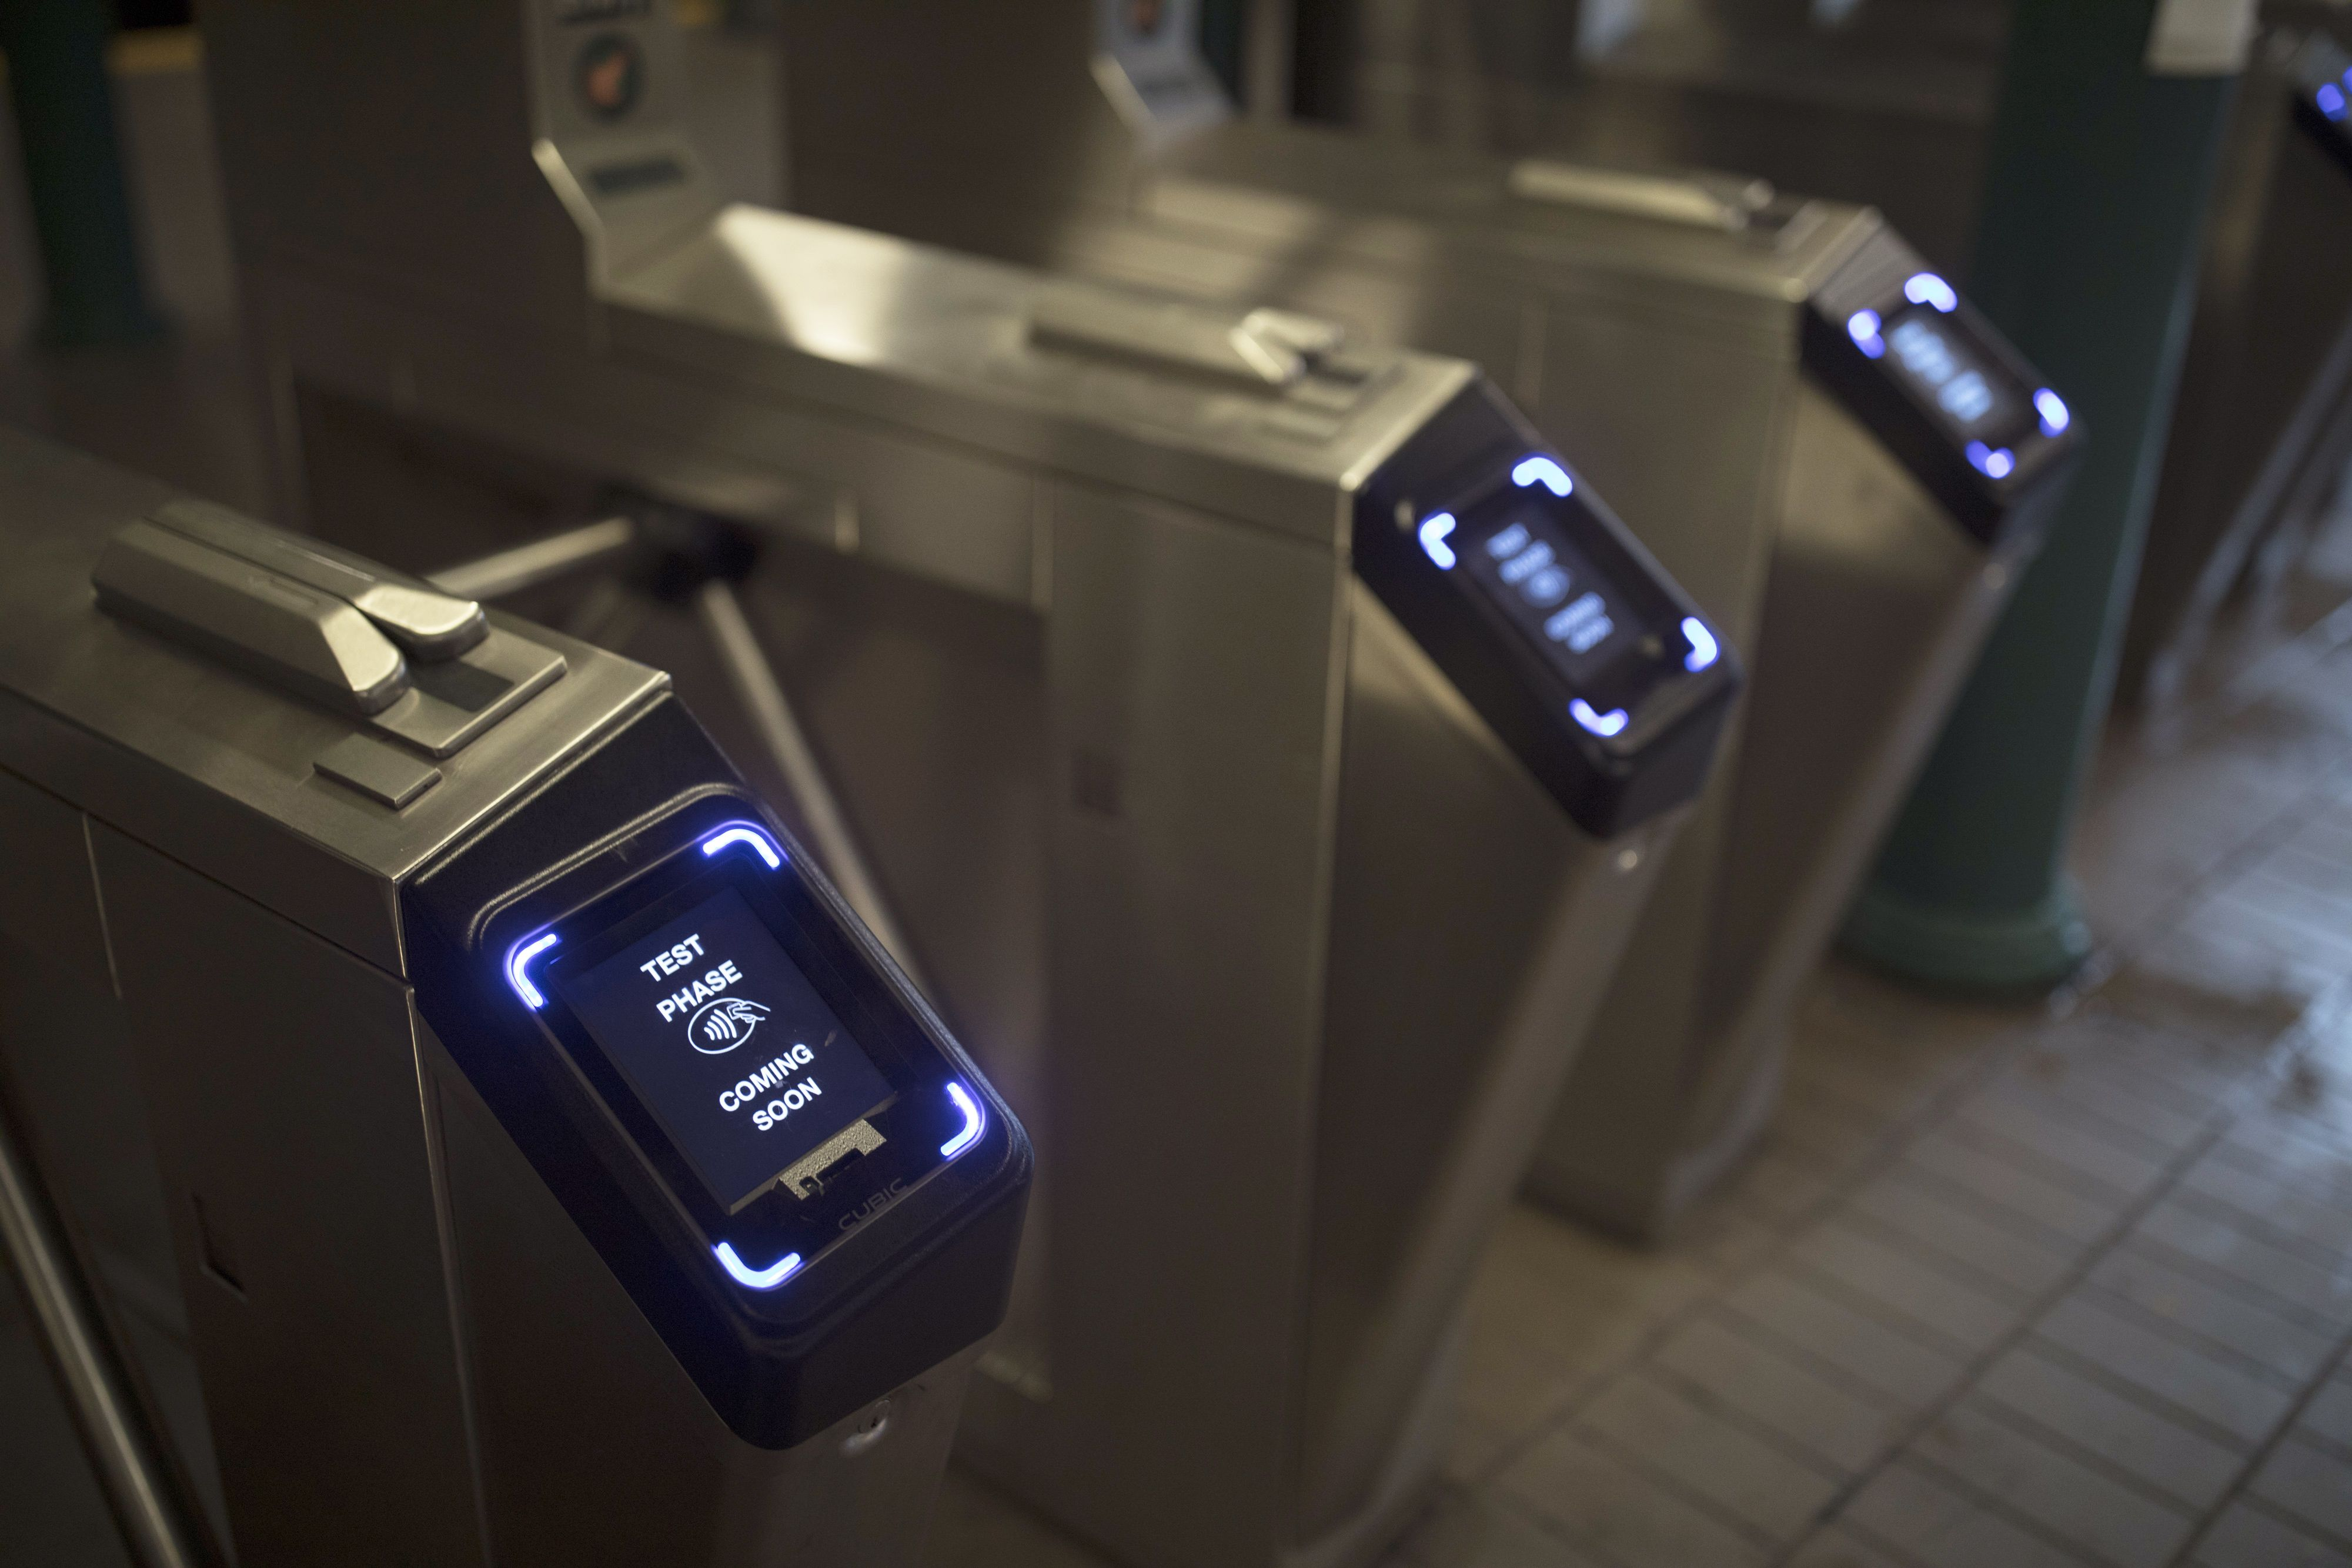 NYC subway riders can soon use their smartphones to enter stations